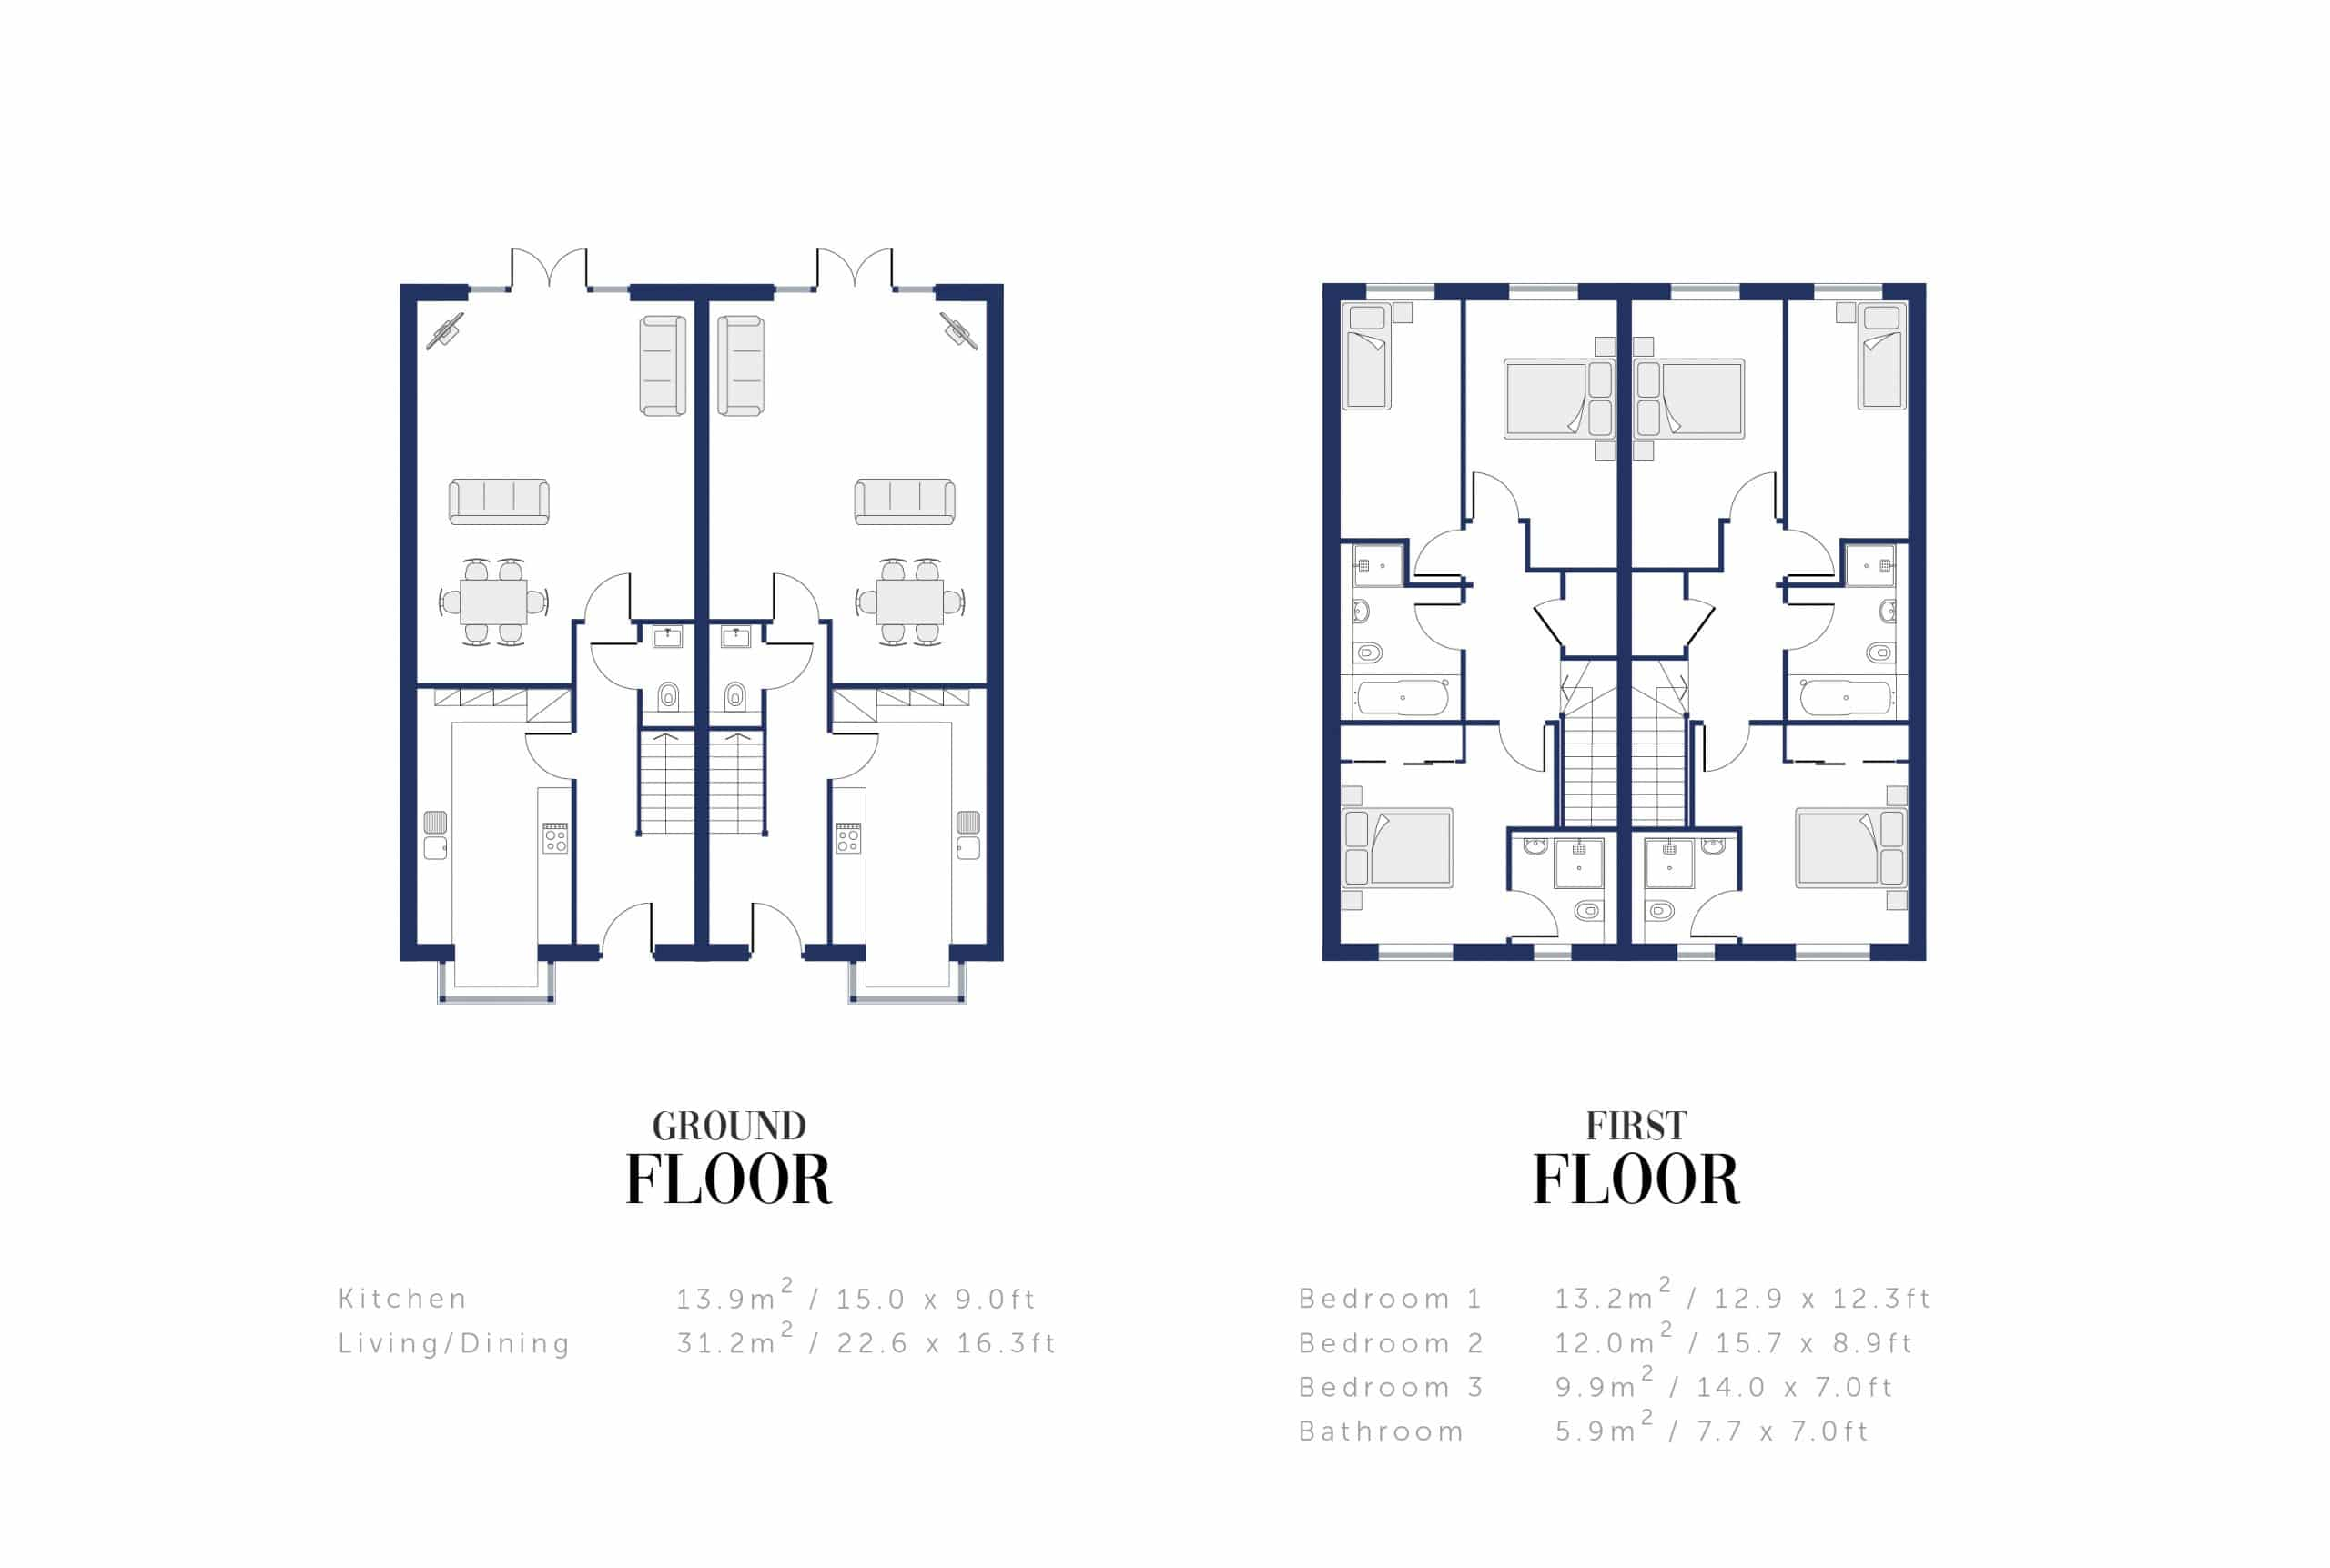 Sunningdale Millers Floor Plan and Sizing for WEB6